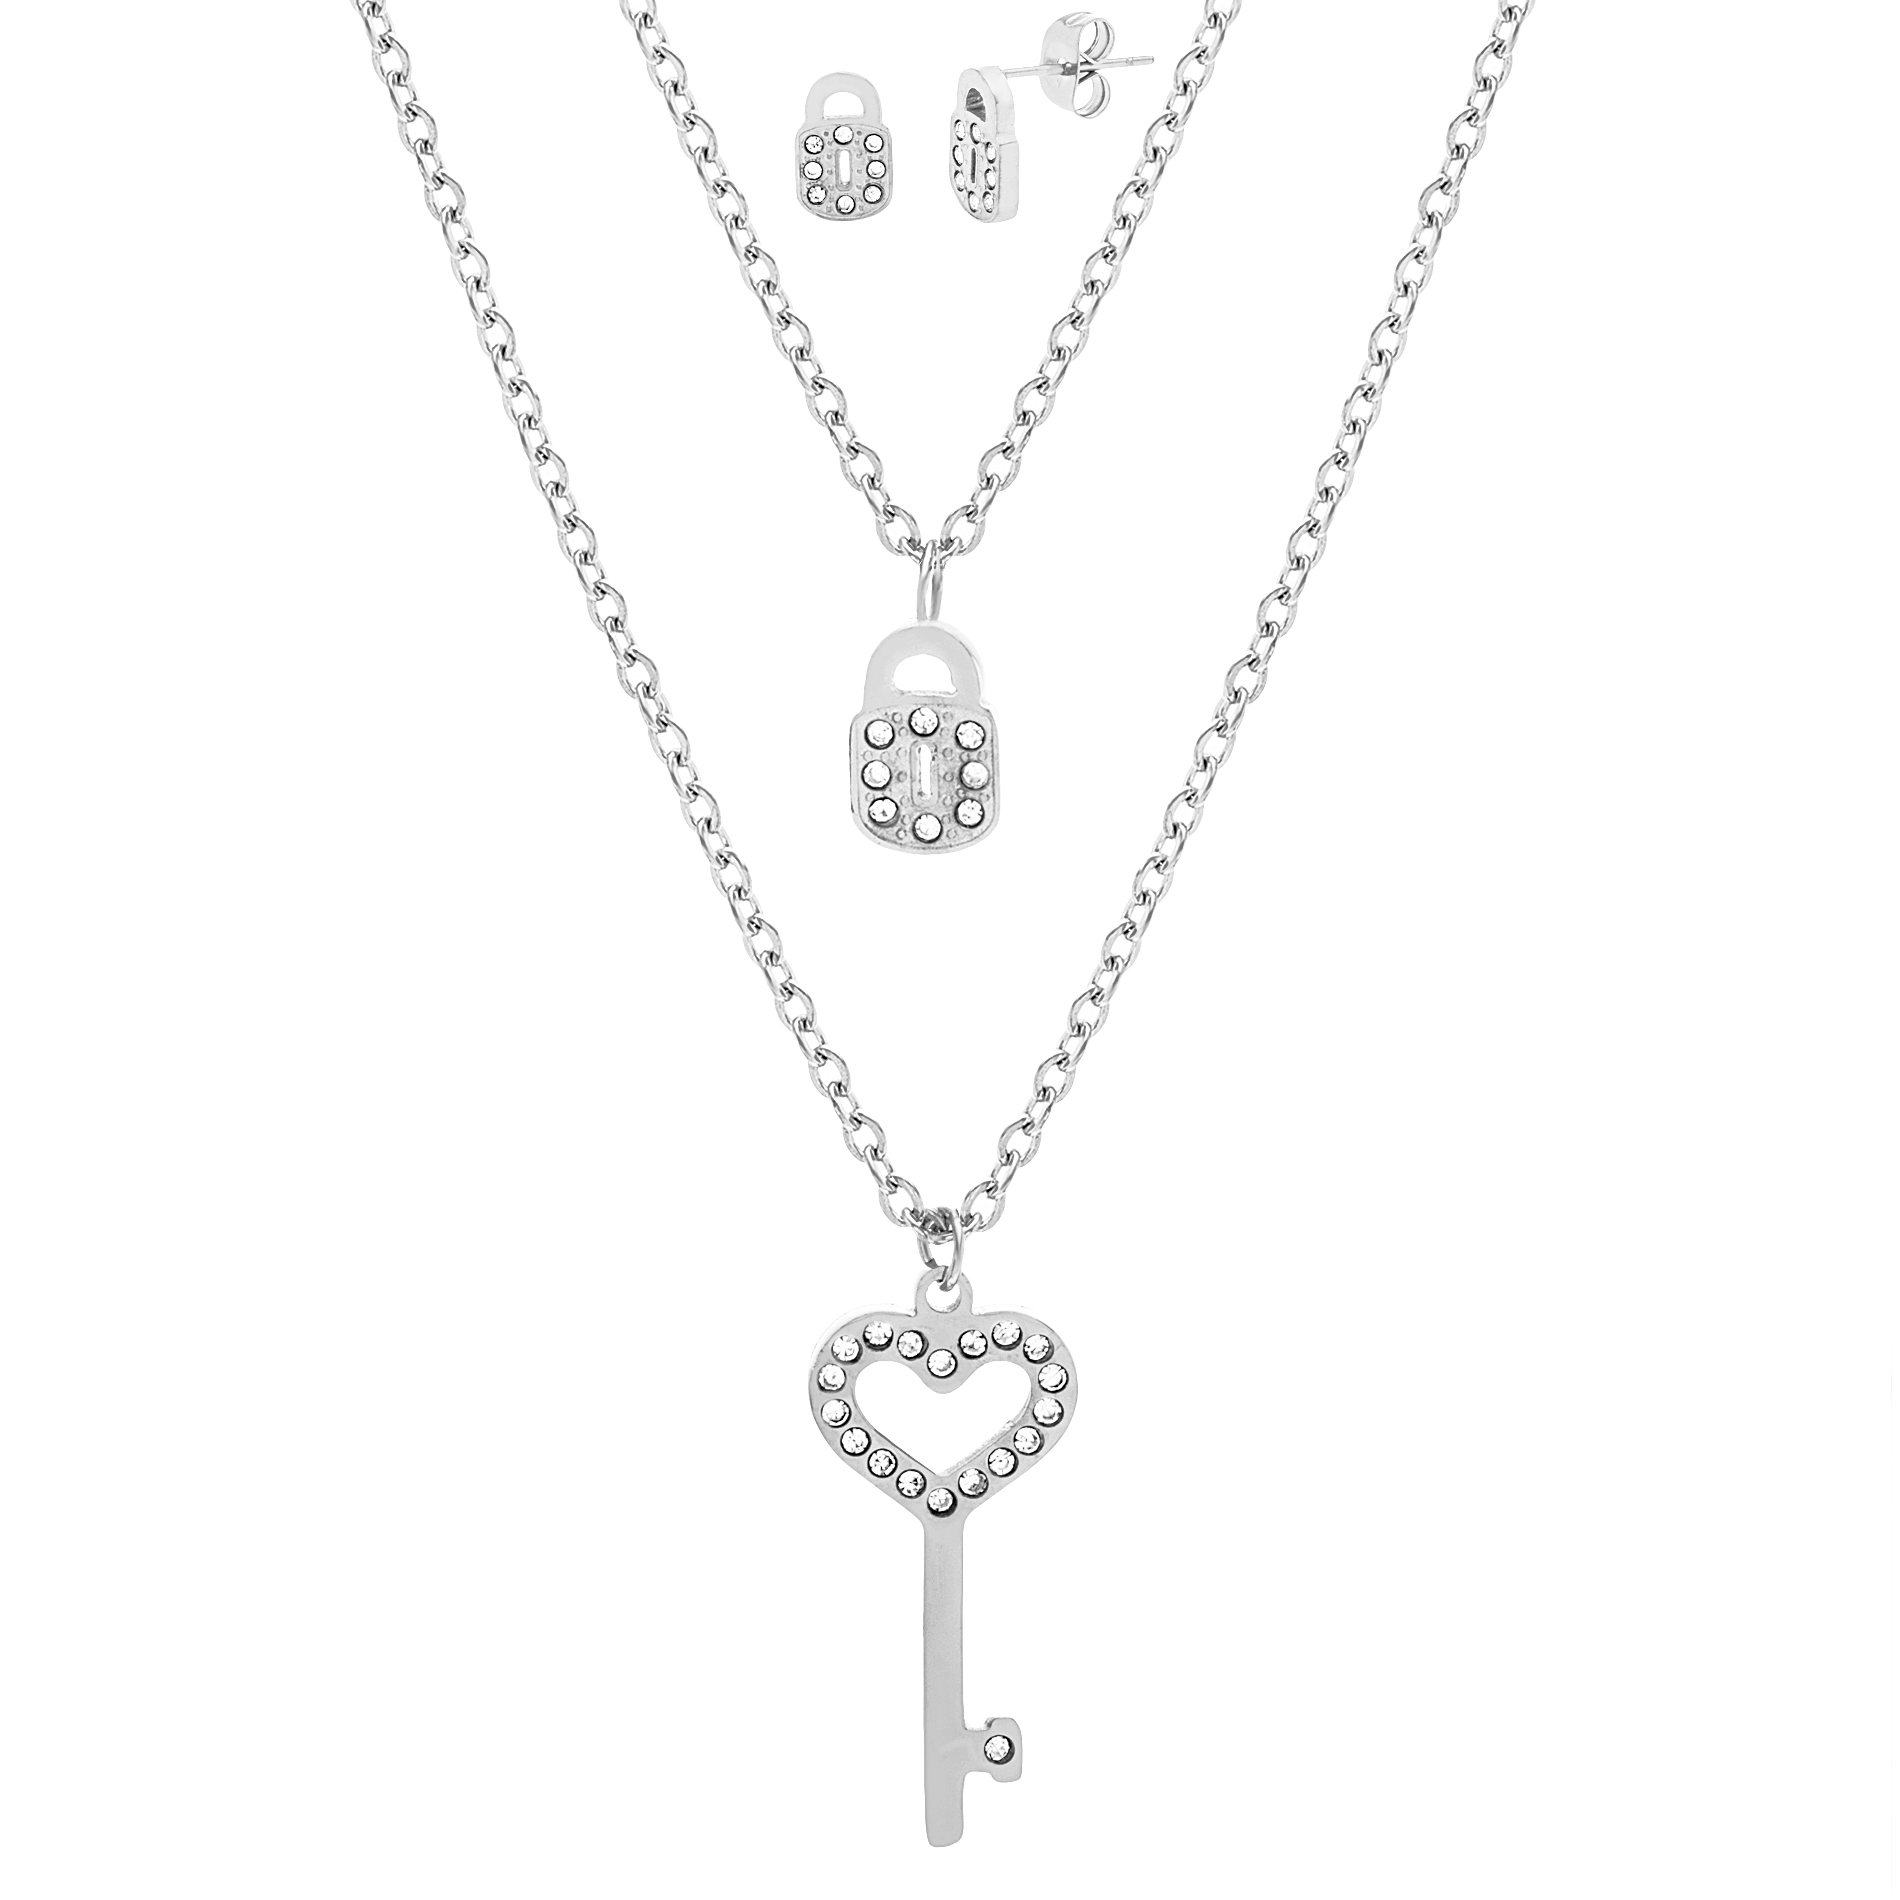 Silver-Tone Stainless Steel Cubic Zirconia Lock and Key Earring and Necklace Set